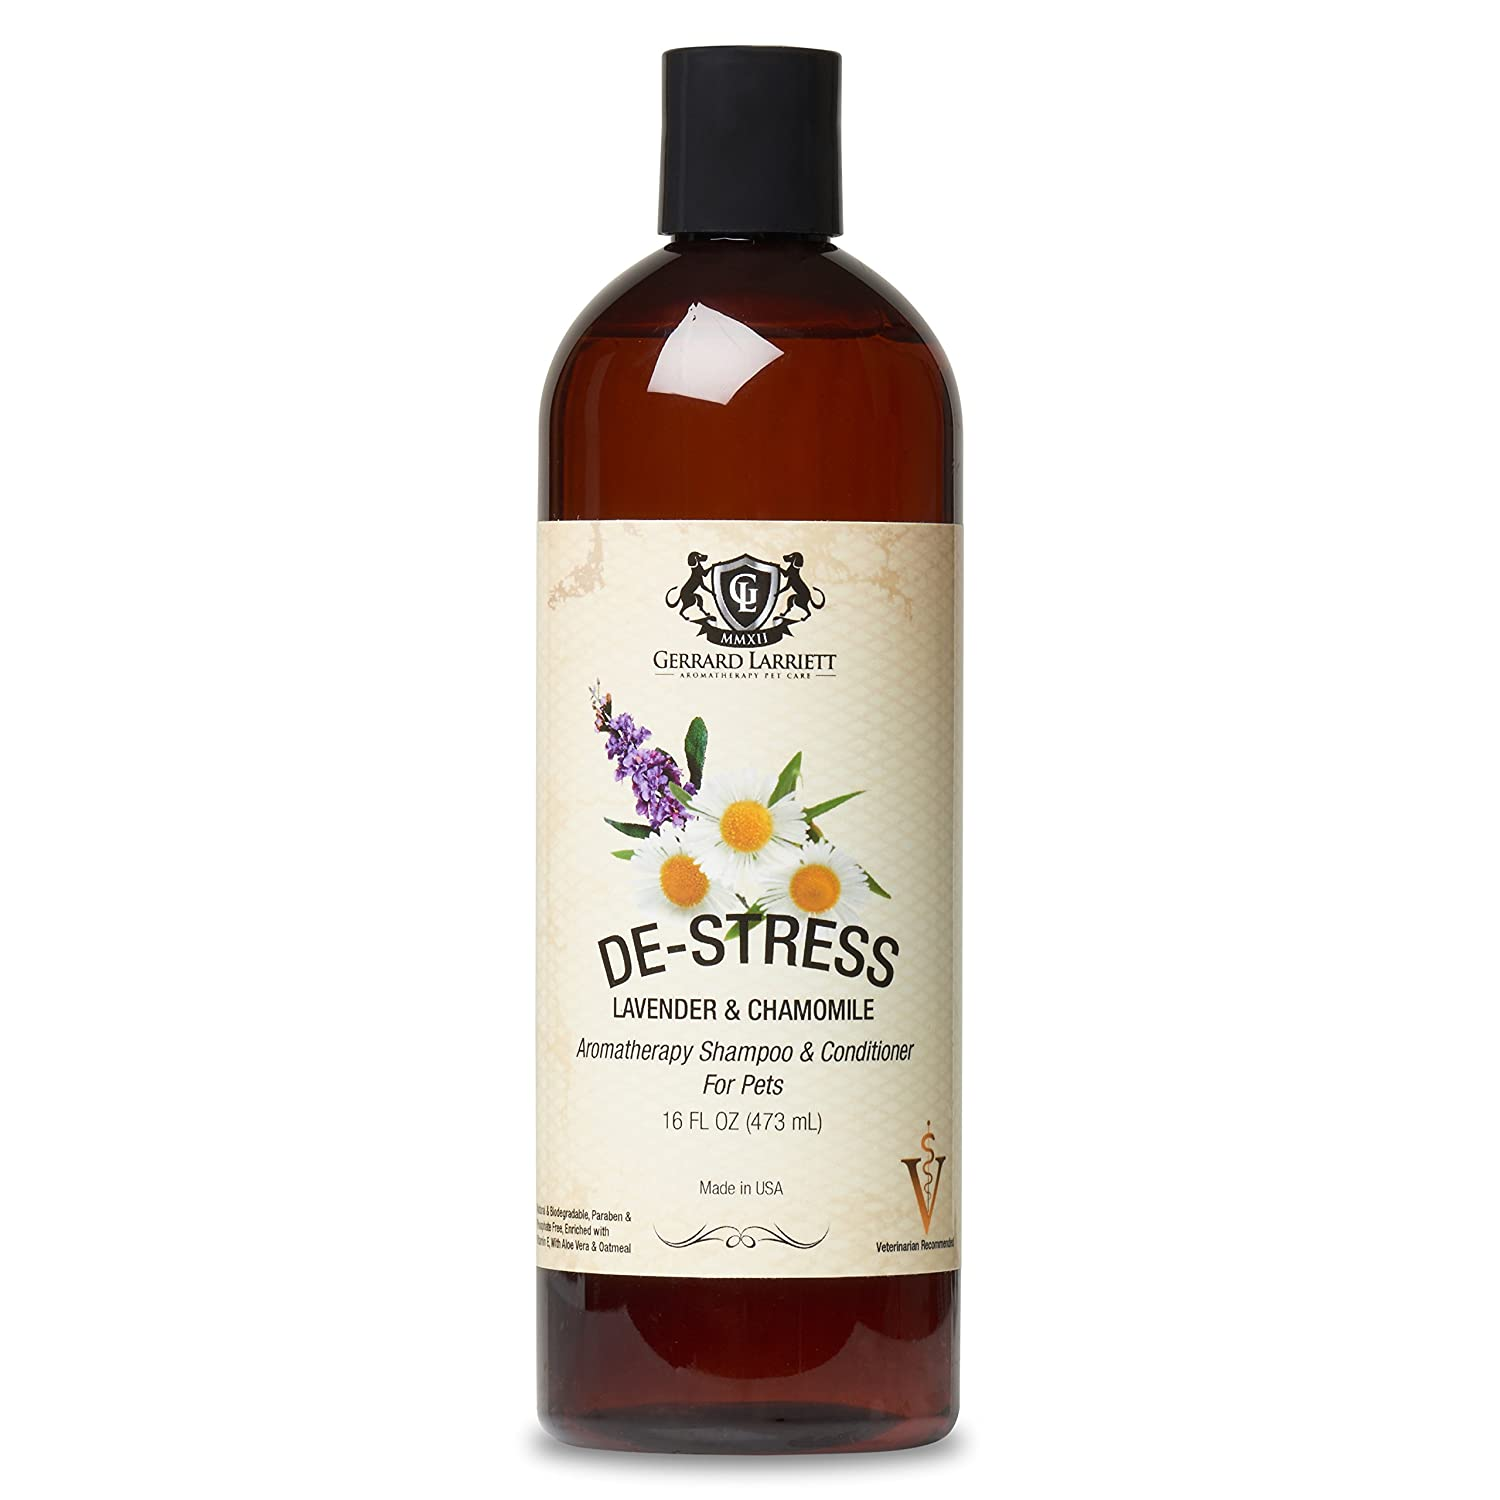 Aromatherapy Shampoo & Conditioner For Pets Dog Shampoo